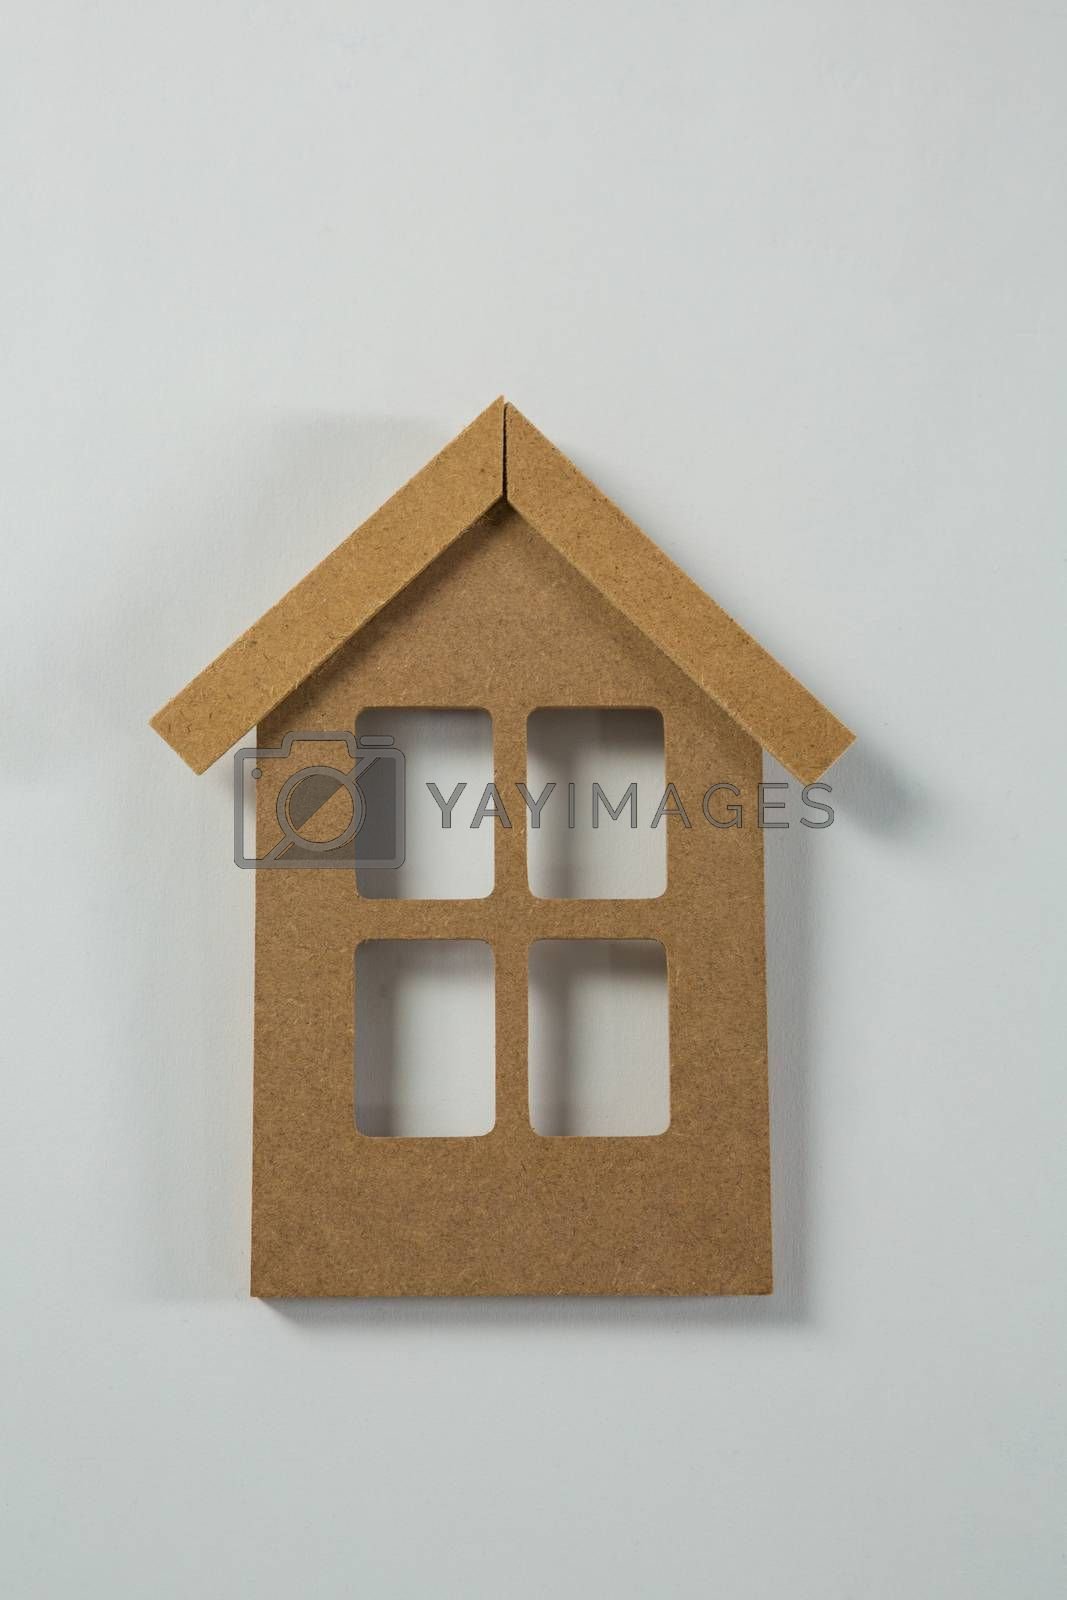 Wooden house shape decoration on table by Wavebreakmedia